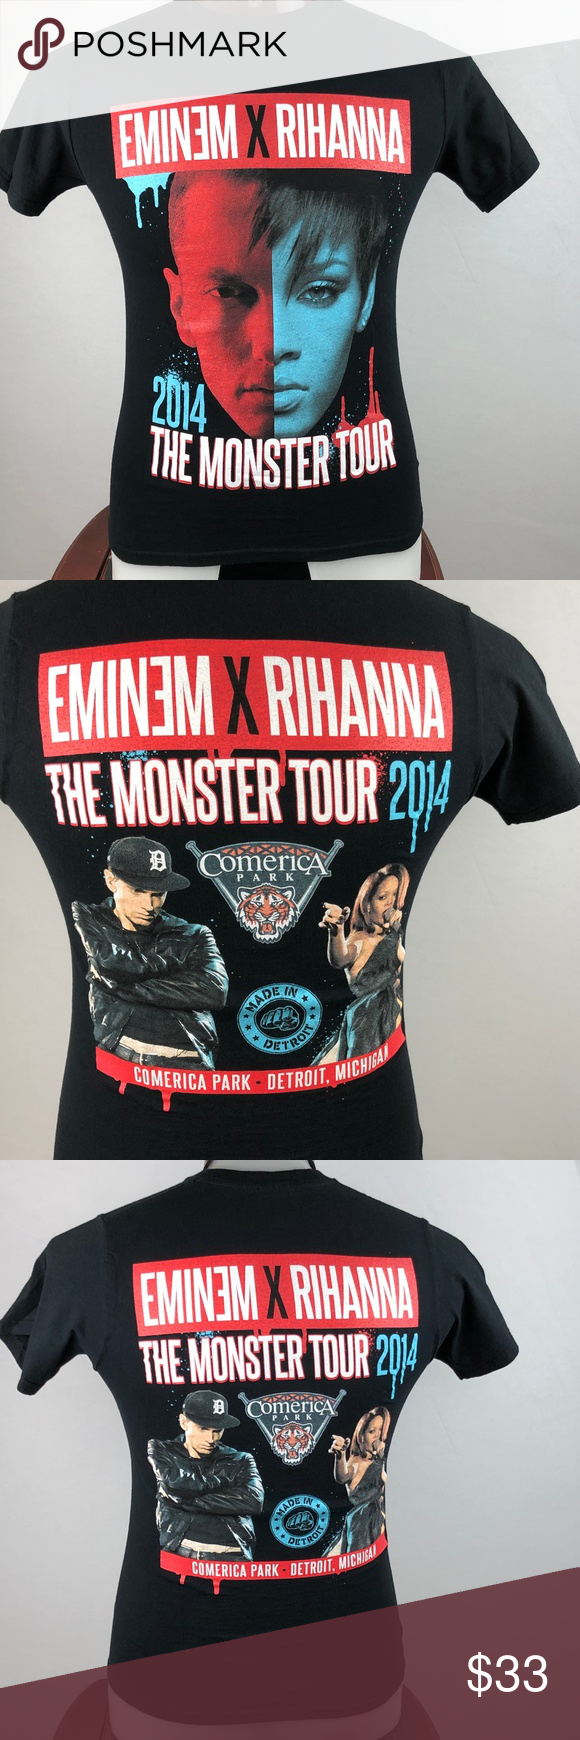 Eminem X Rihanna The Monster Tour 2014 S T Shirt Eminem